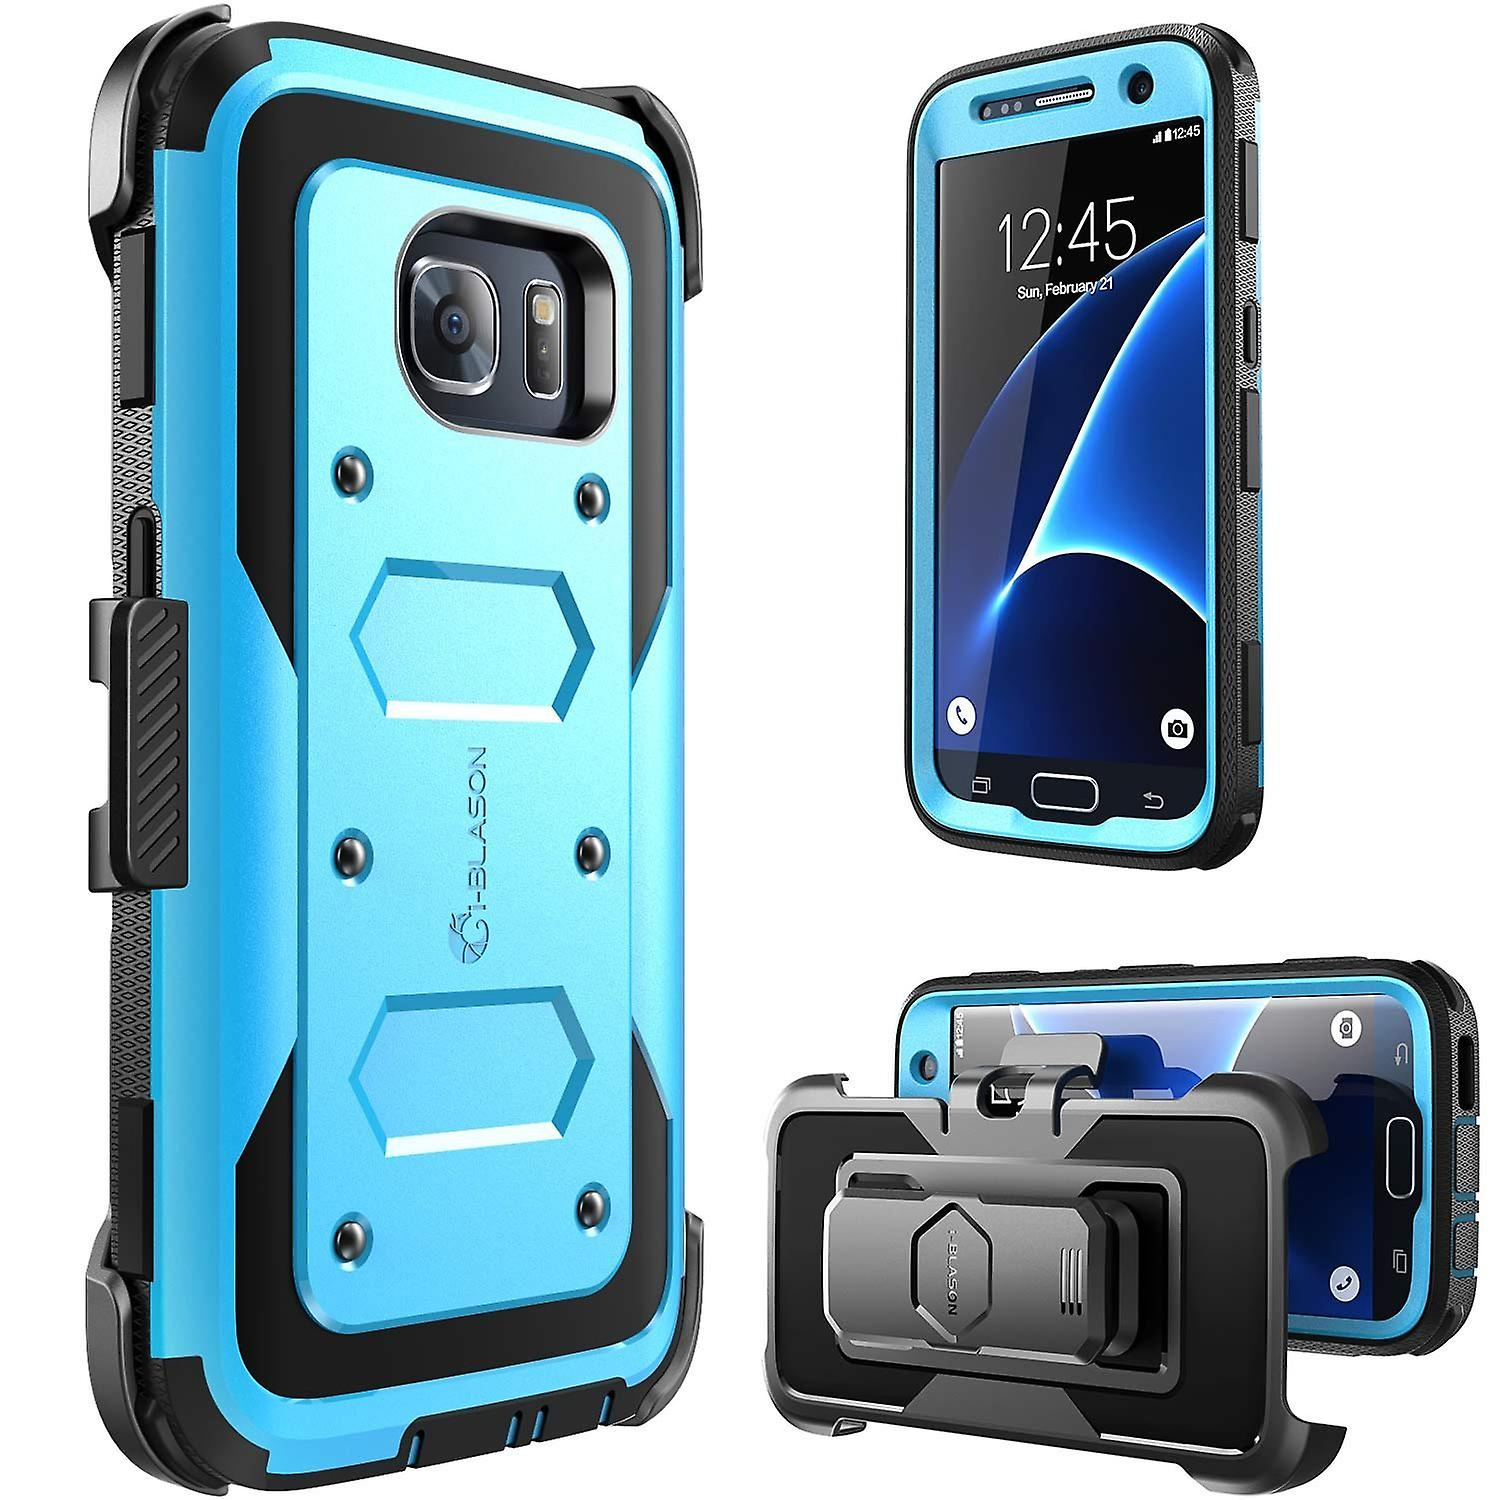 Galaxy S7 Case,Armorbox,i-Blason built in Screen Protector,for Samsung Galaxy S7 2016 Release-Blue